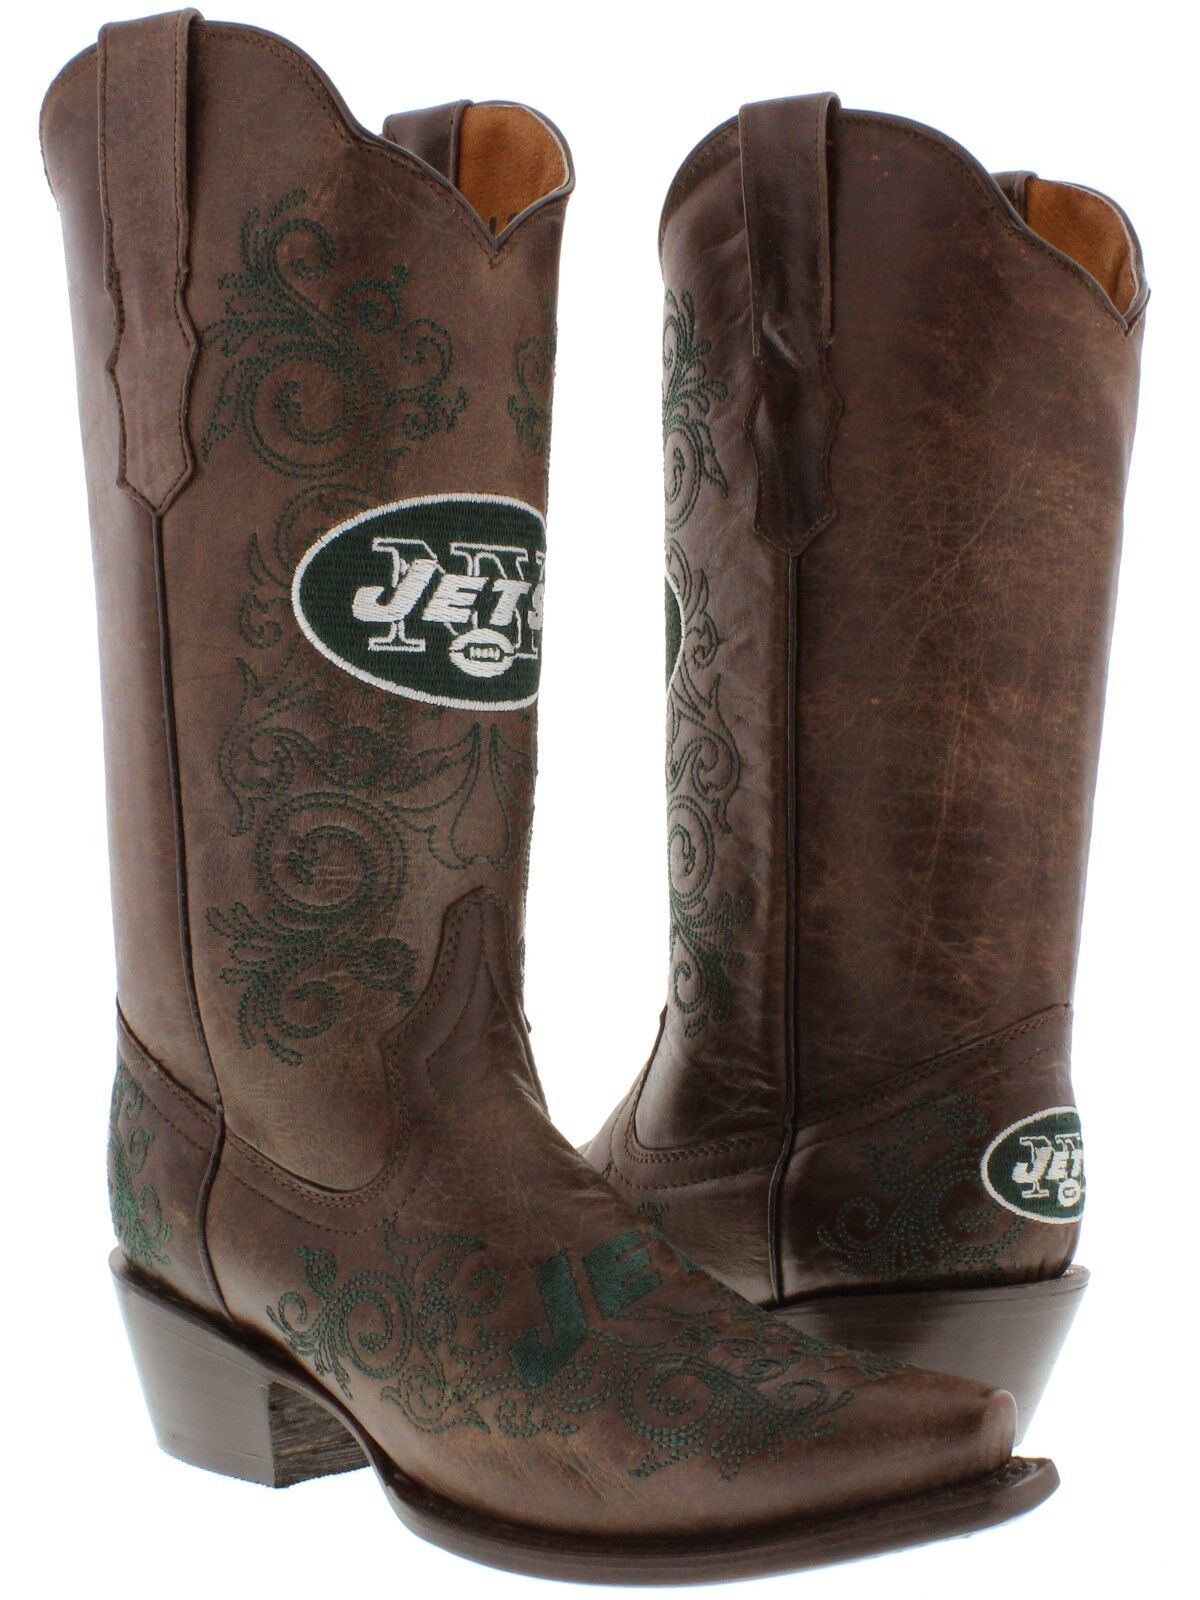 braun New York Jets Rodeo Riding Leather Cowboy Stiefel Western Snip Toe new